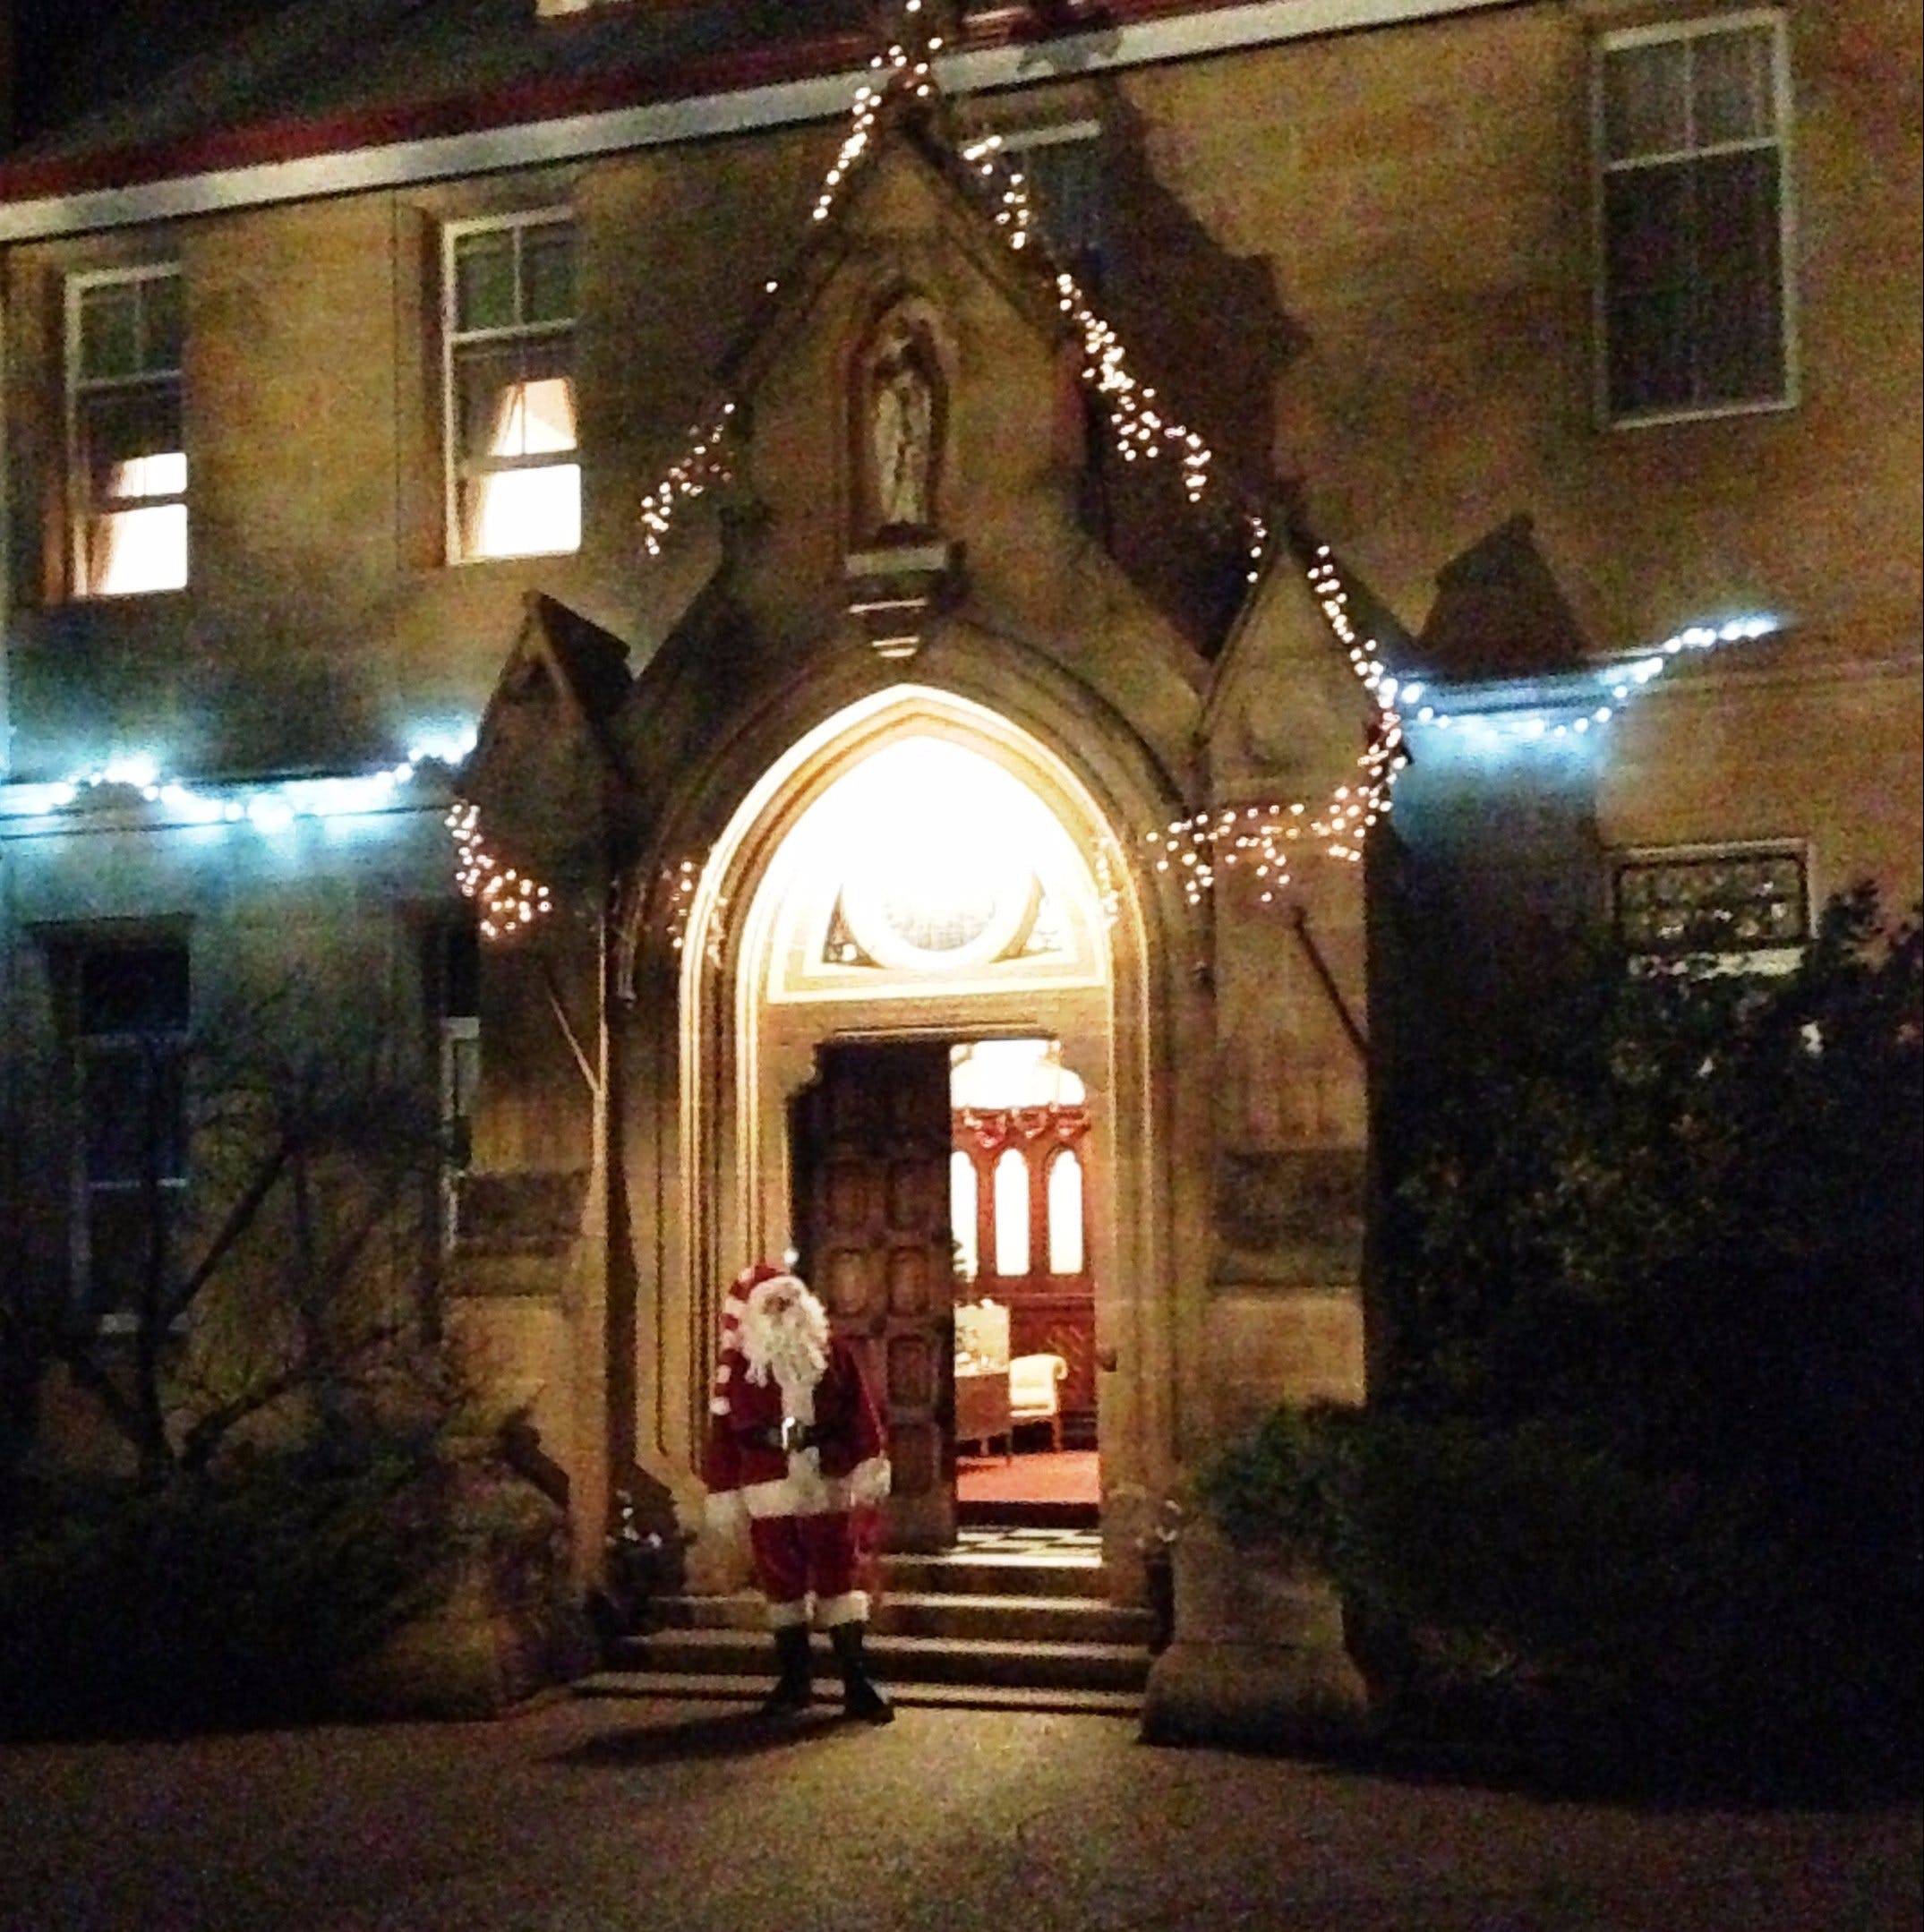 Abbey of the Roses - Christmas in July - Foster Accommodation